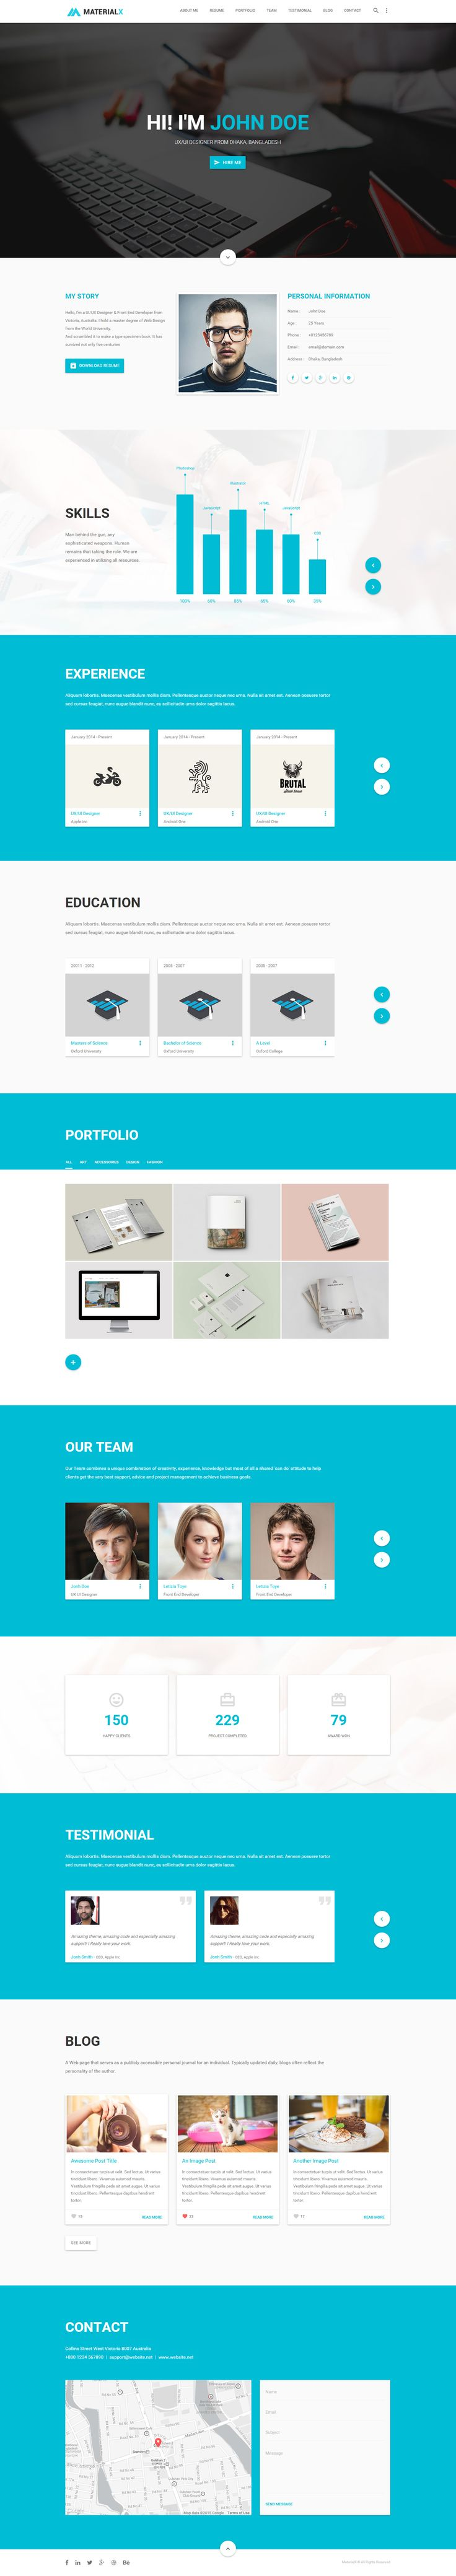 MaterialX is a material design Resume and Portfolio Template based on Twitter Bootstrap and Materialize, developed for professional to display their Profile, Resume, Portfolio etc. Easily customizable and fully responsive for all device.